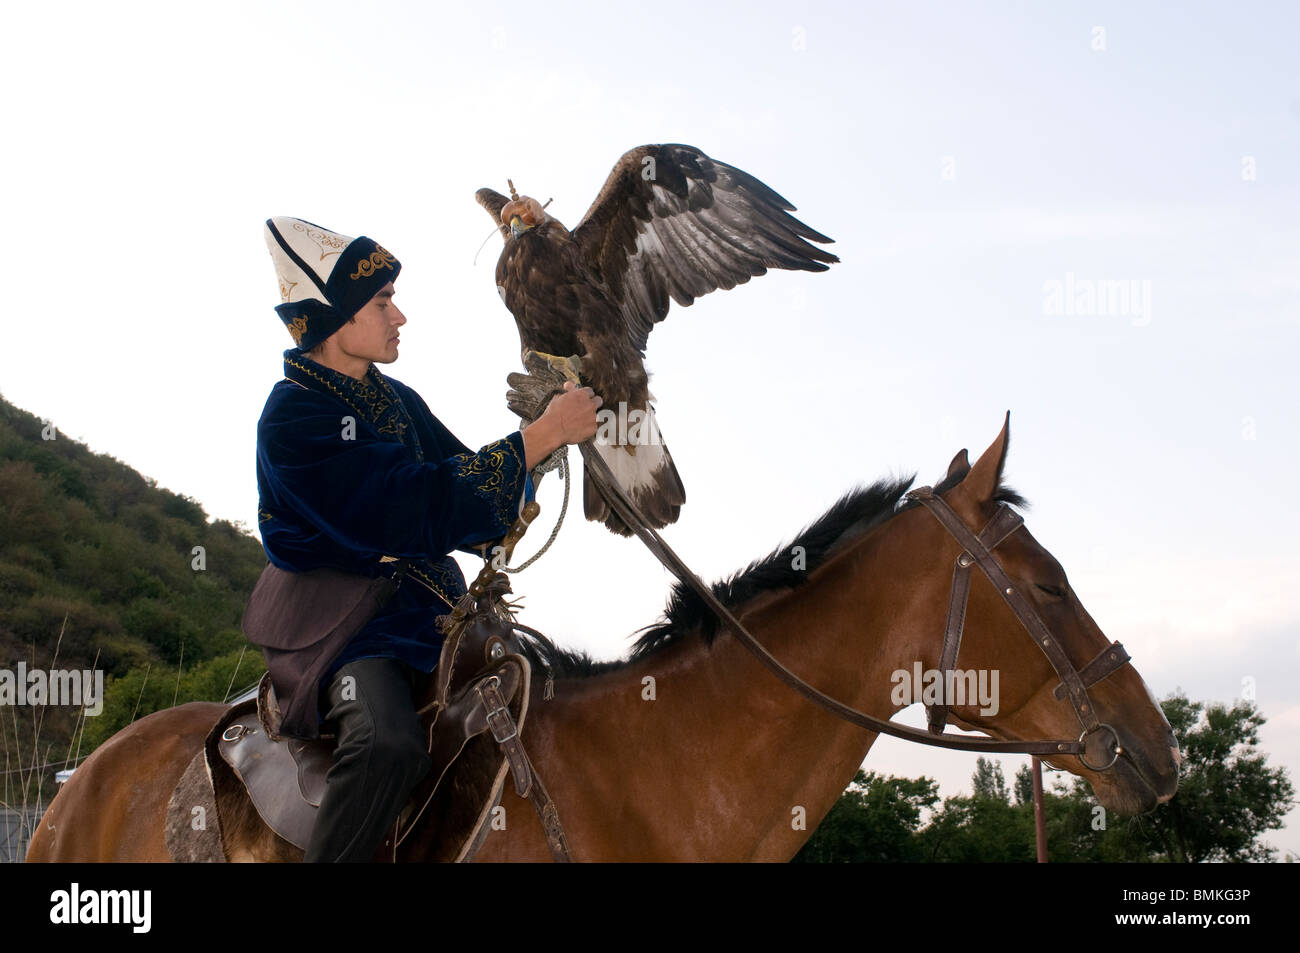 Man is showing a falcon flight at the Suncar Falcon farm, Alma Ata, Kazakhstan - Stock Image